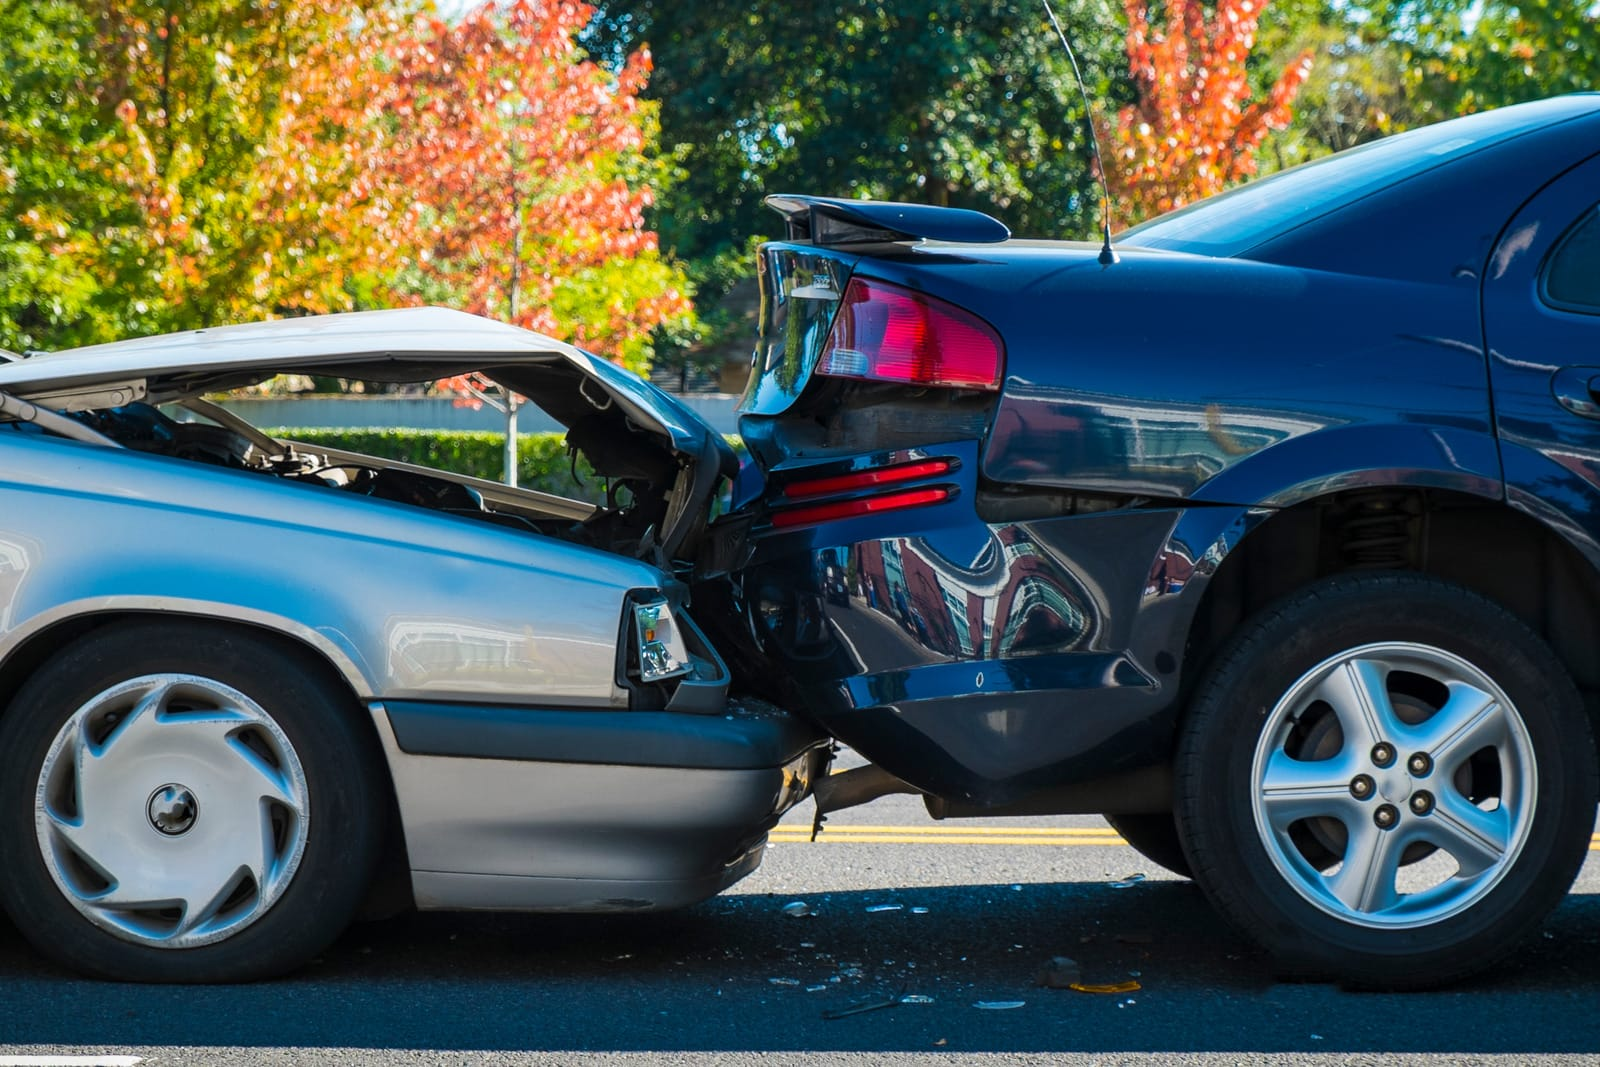 How Long Does It Take To Recover From A Vehicle Accident?